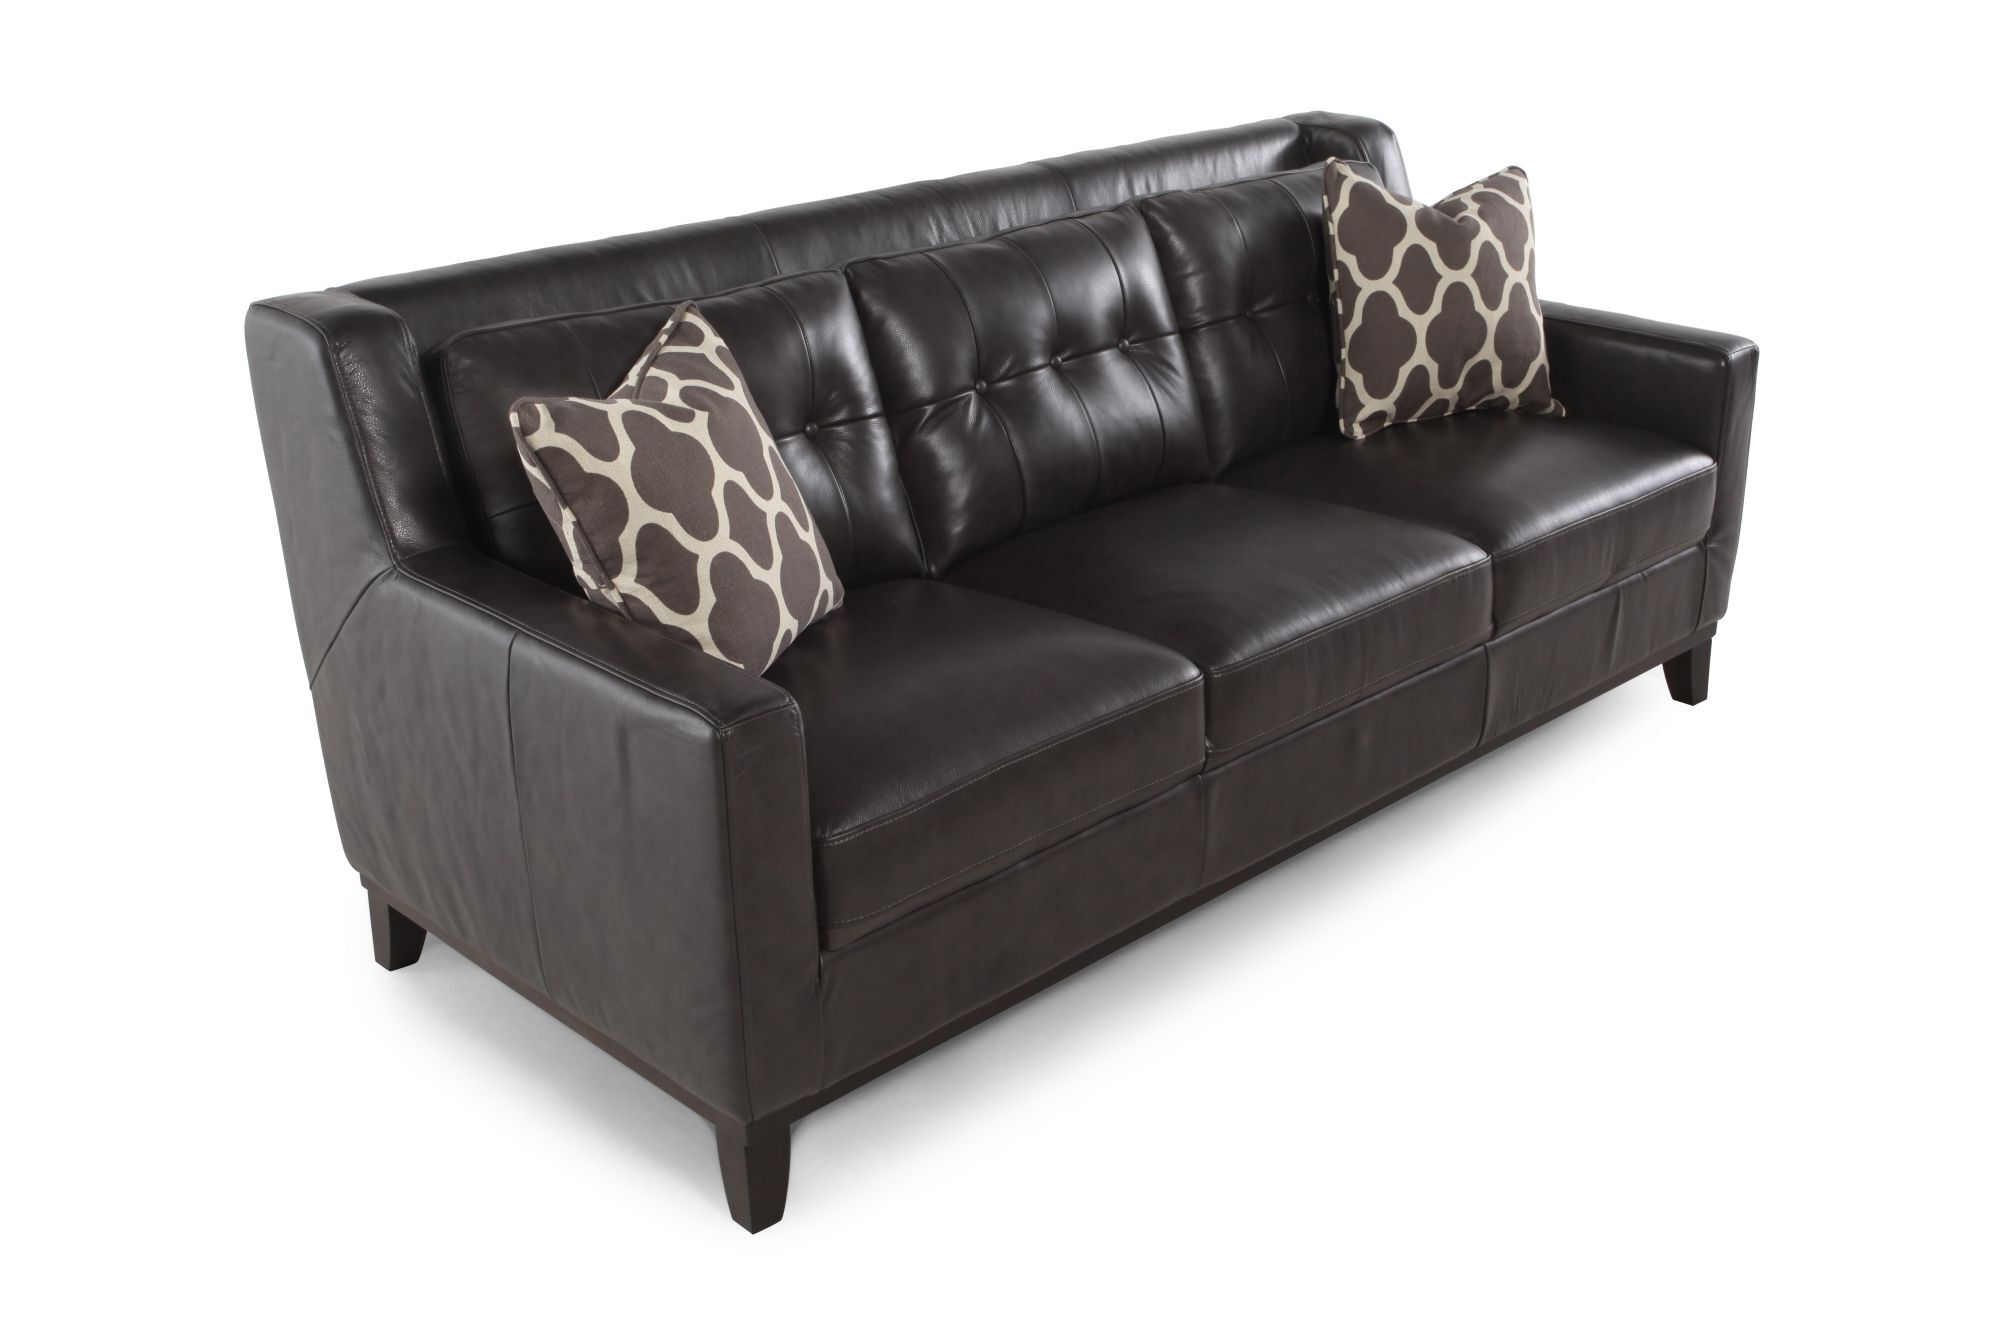 gray leather sofa images chesterfield manufacturer uk boulevard grey mathis brothers furniture